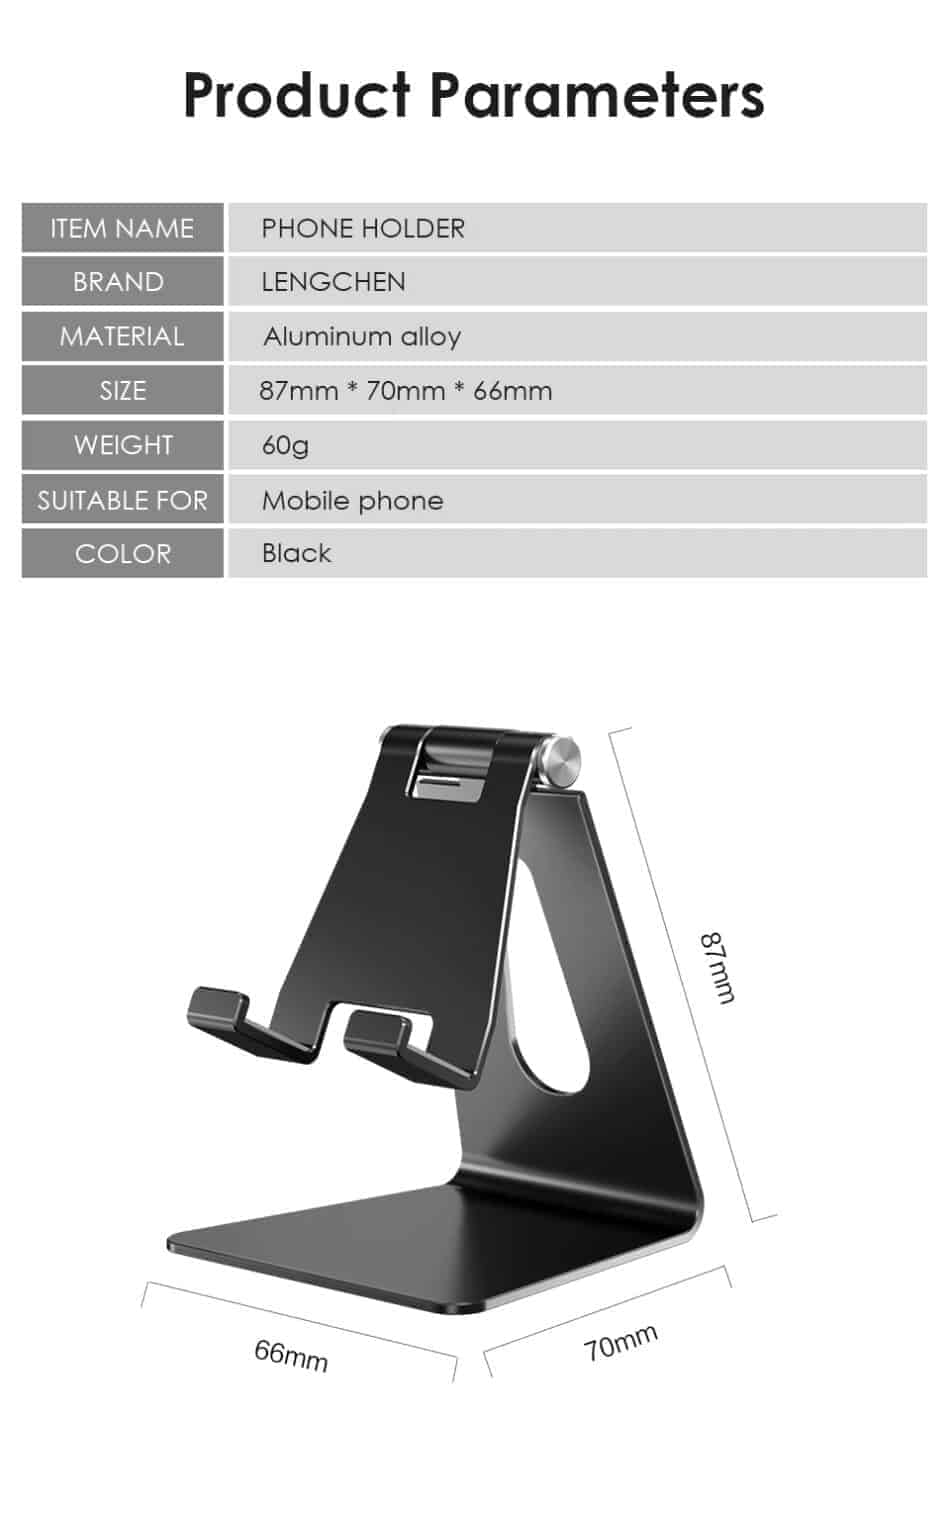 Foldable Aluminum stand for smart phone lzj01 Product parameter